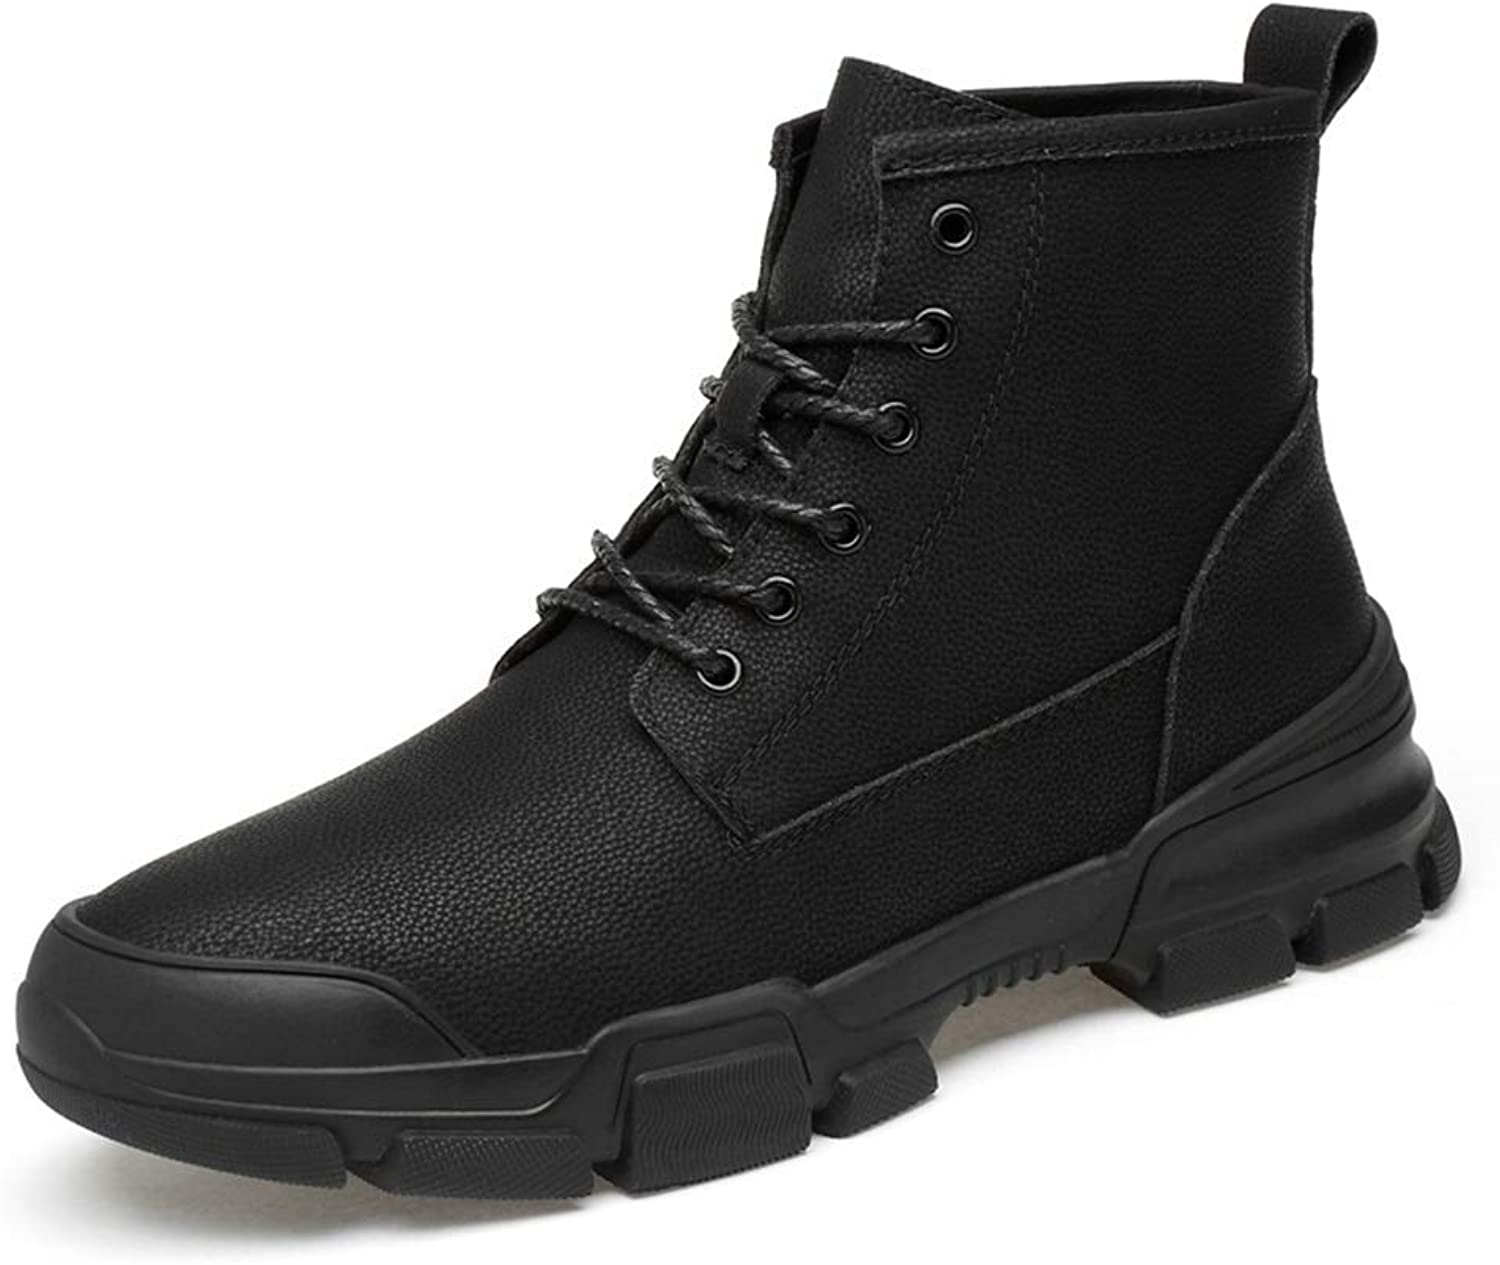 Hhgold Men's Casual British Stylefashion Ankle Boots Simple Rubber Sole Lacing Leisure Sport Boots (color  Black, Size  37 EU) (color   Black, Size   47 EU)